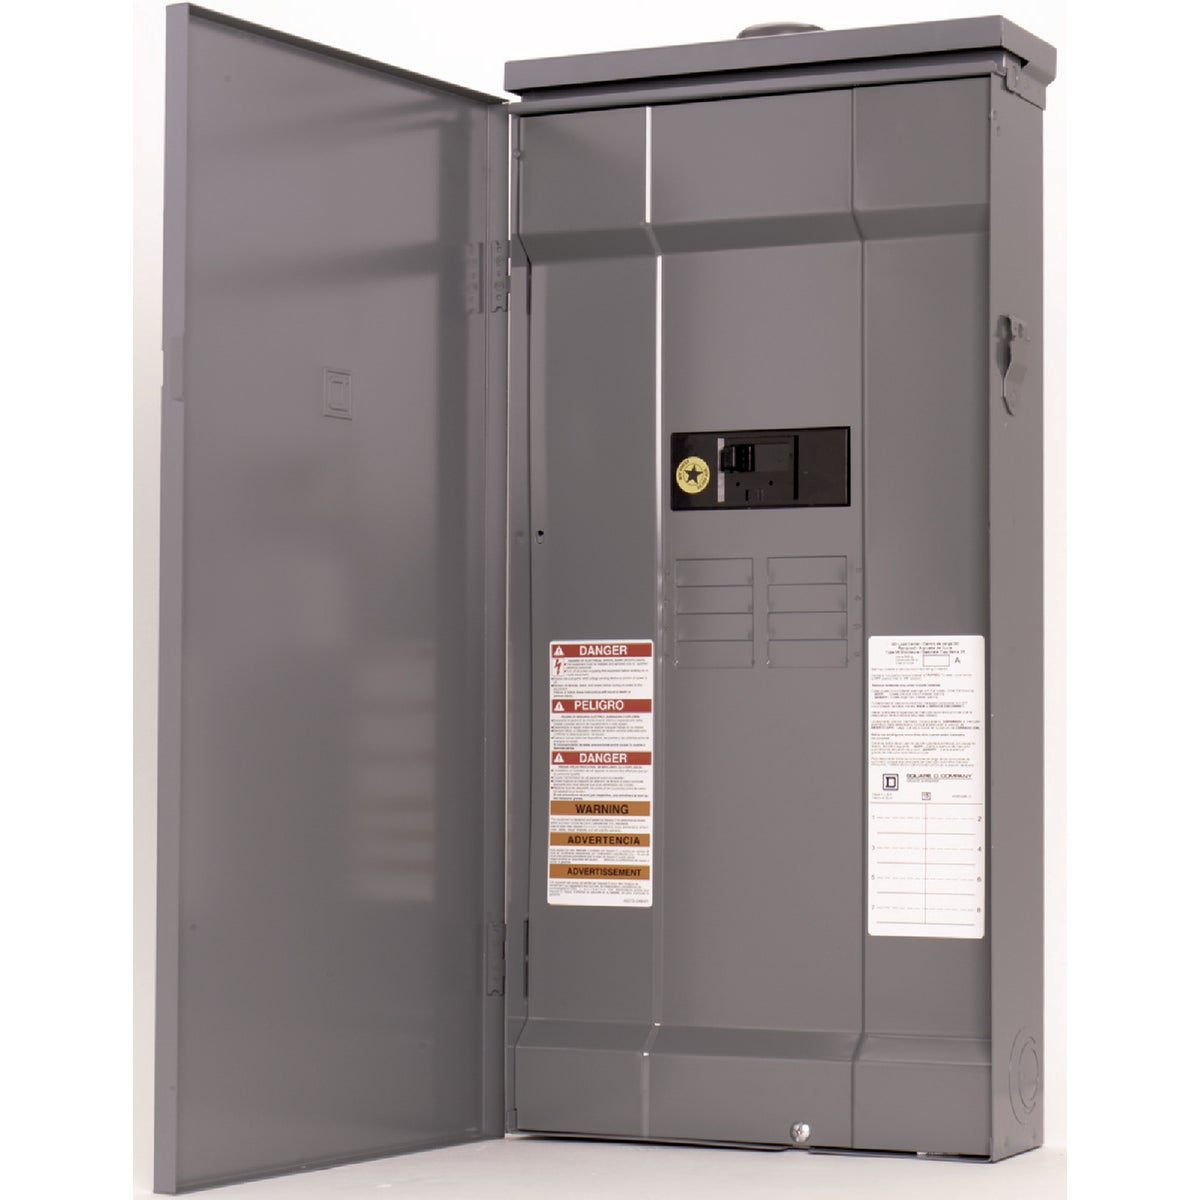 200A LOAD CENTER - QO1816M200FTRB by Square D Co